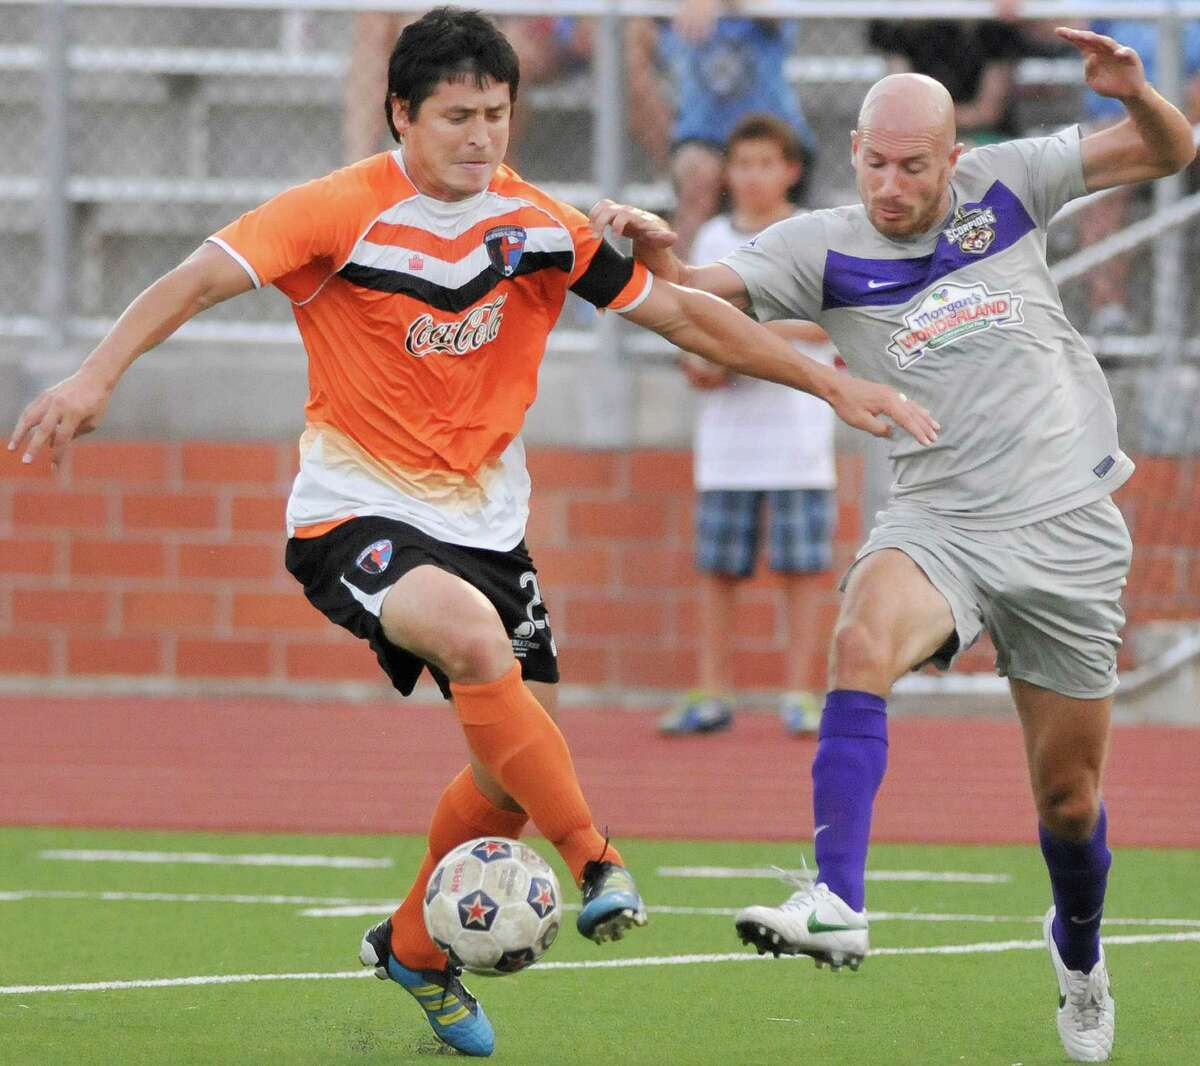 Charlotte's Josh Rife, left, is intercepted by the Scorpions' Hans Denissen during a U.S. Open Cup soccer match, Tuesday, June 5, 2012, at Heroes Stadium.